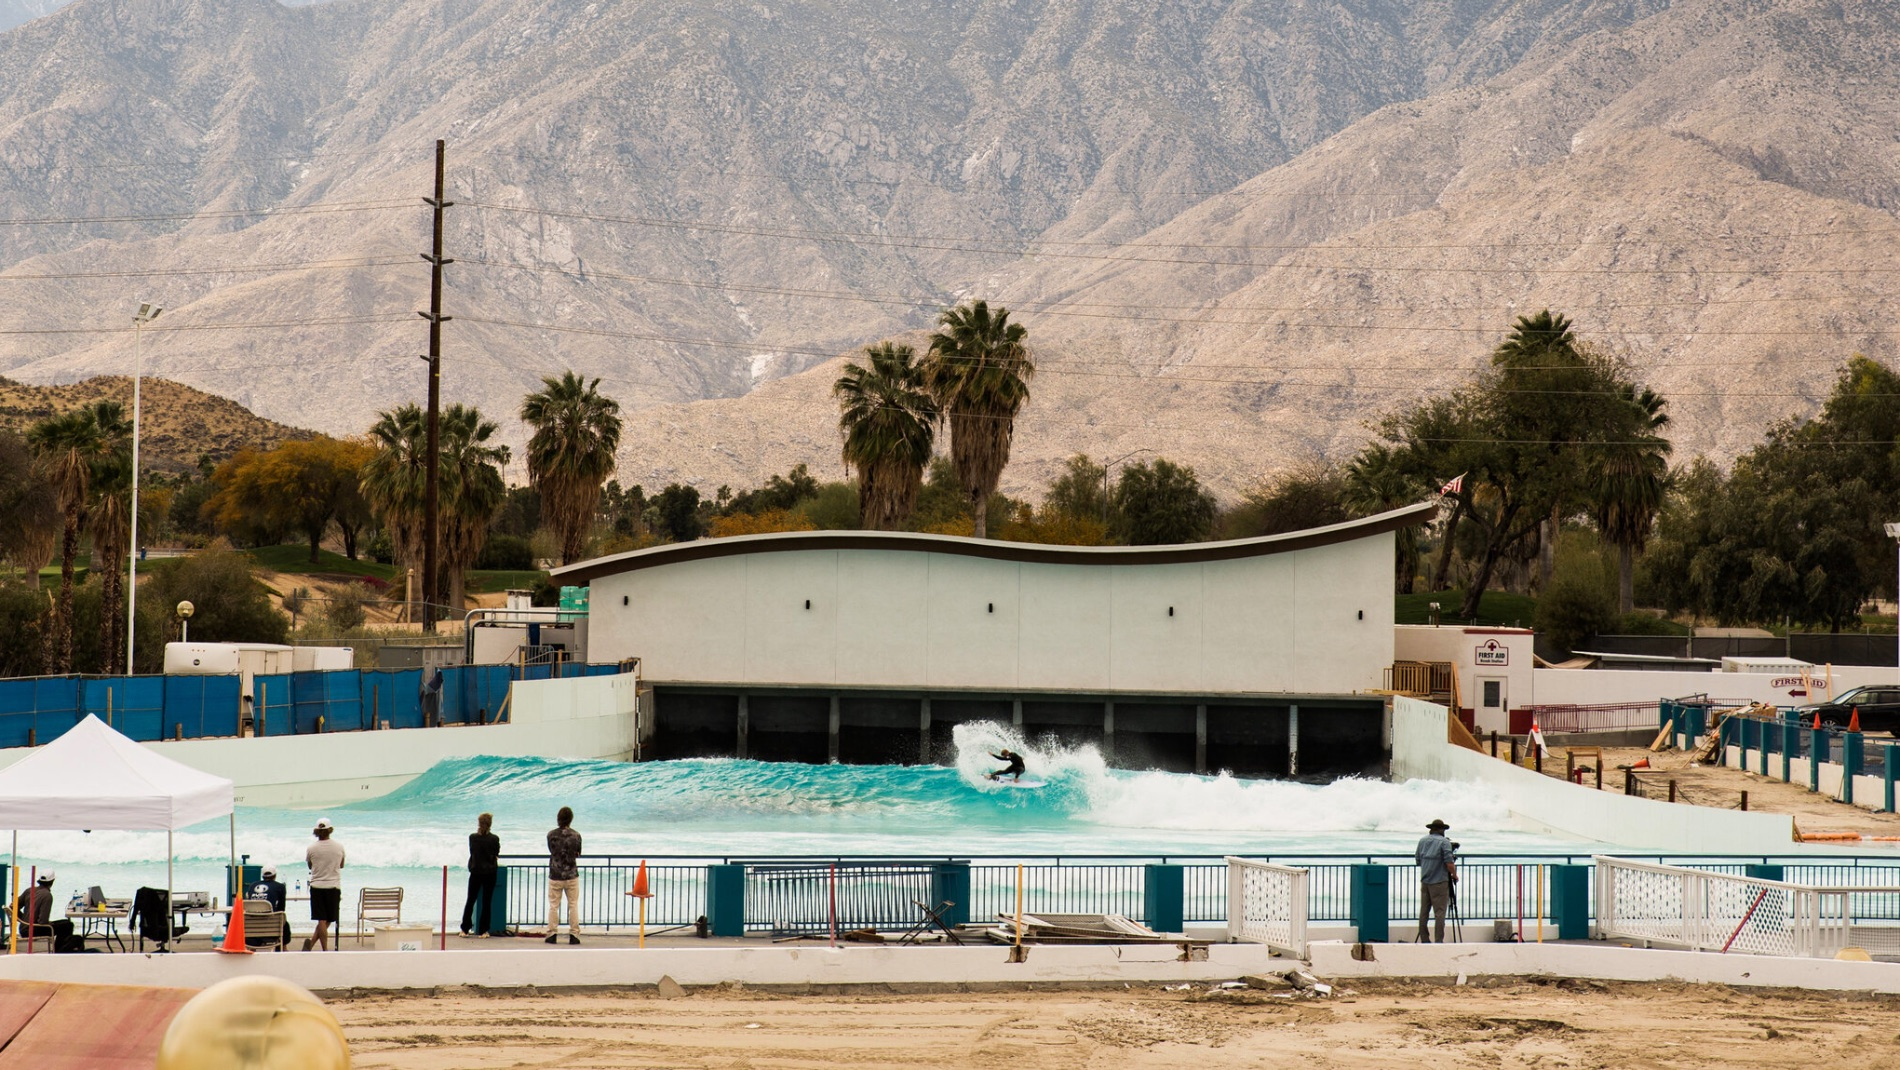 SurfPool system at Palm Springs Surf Club